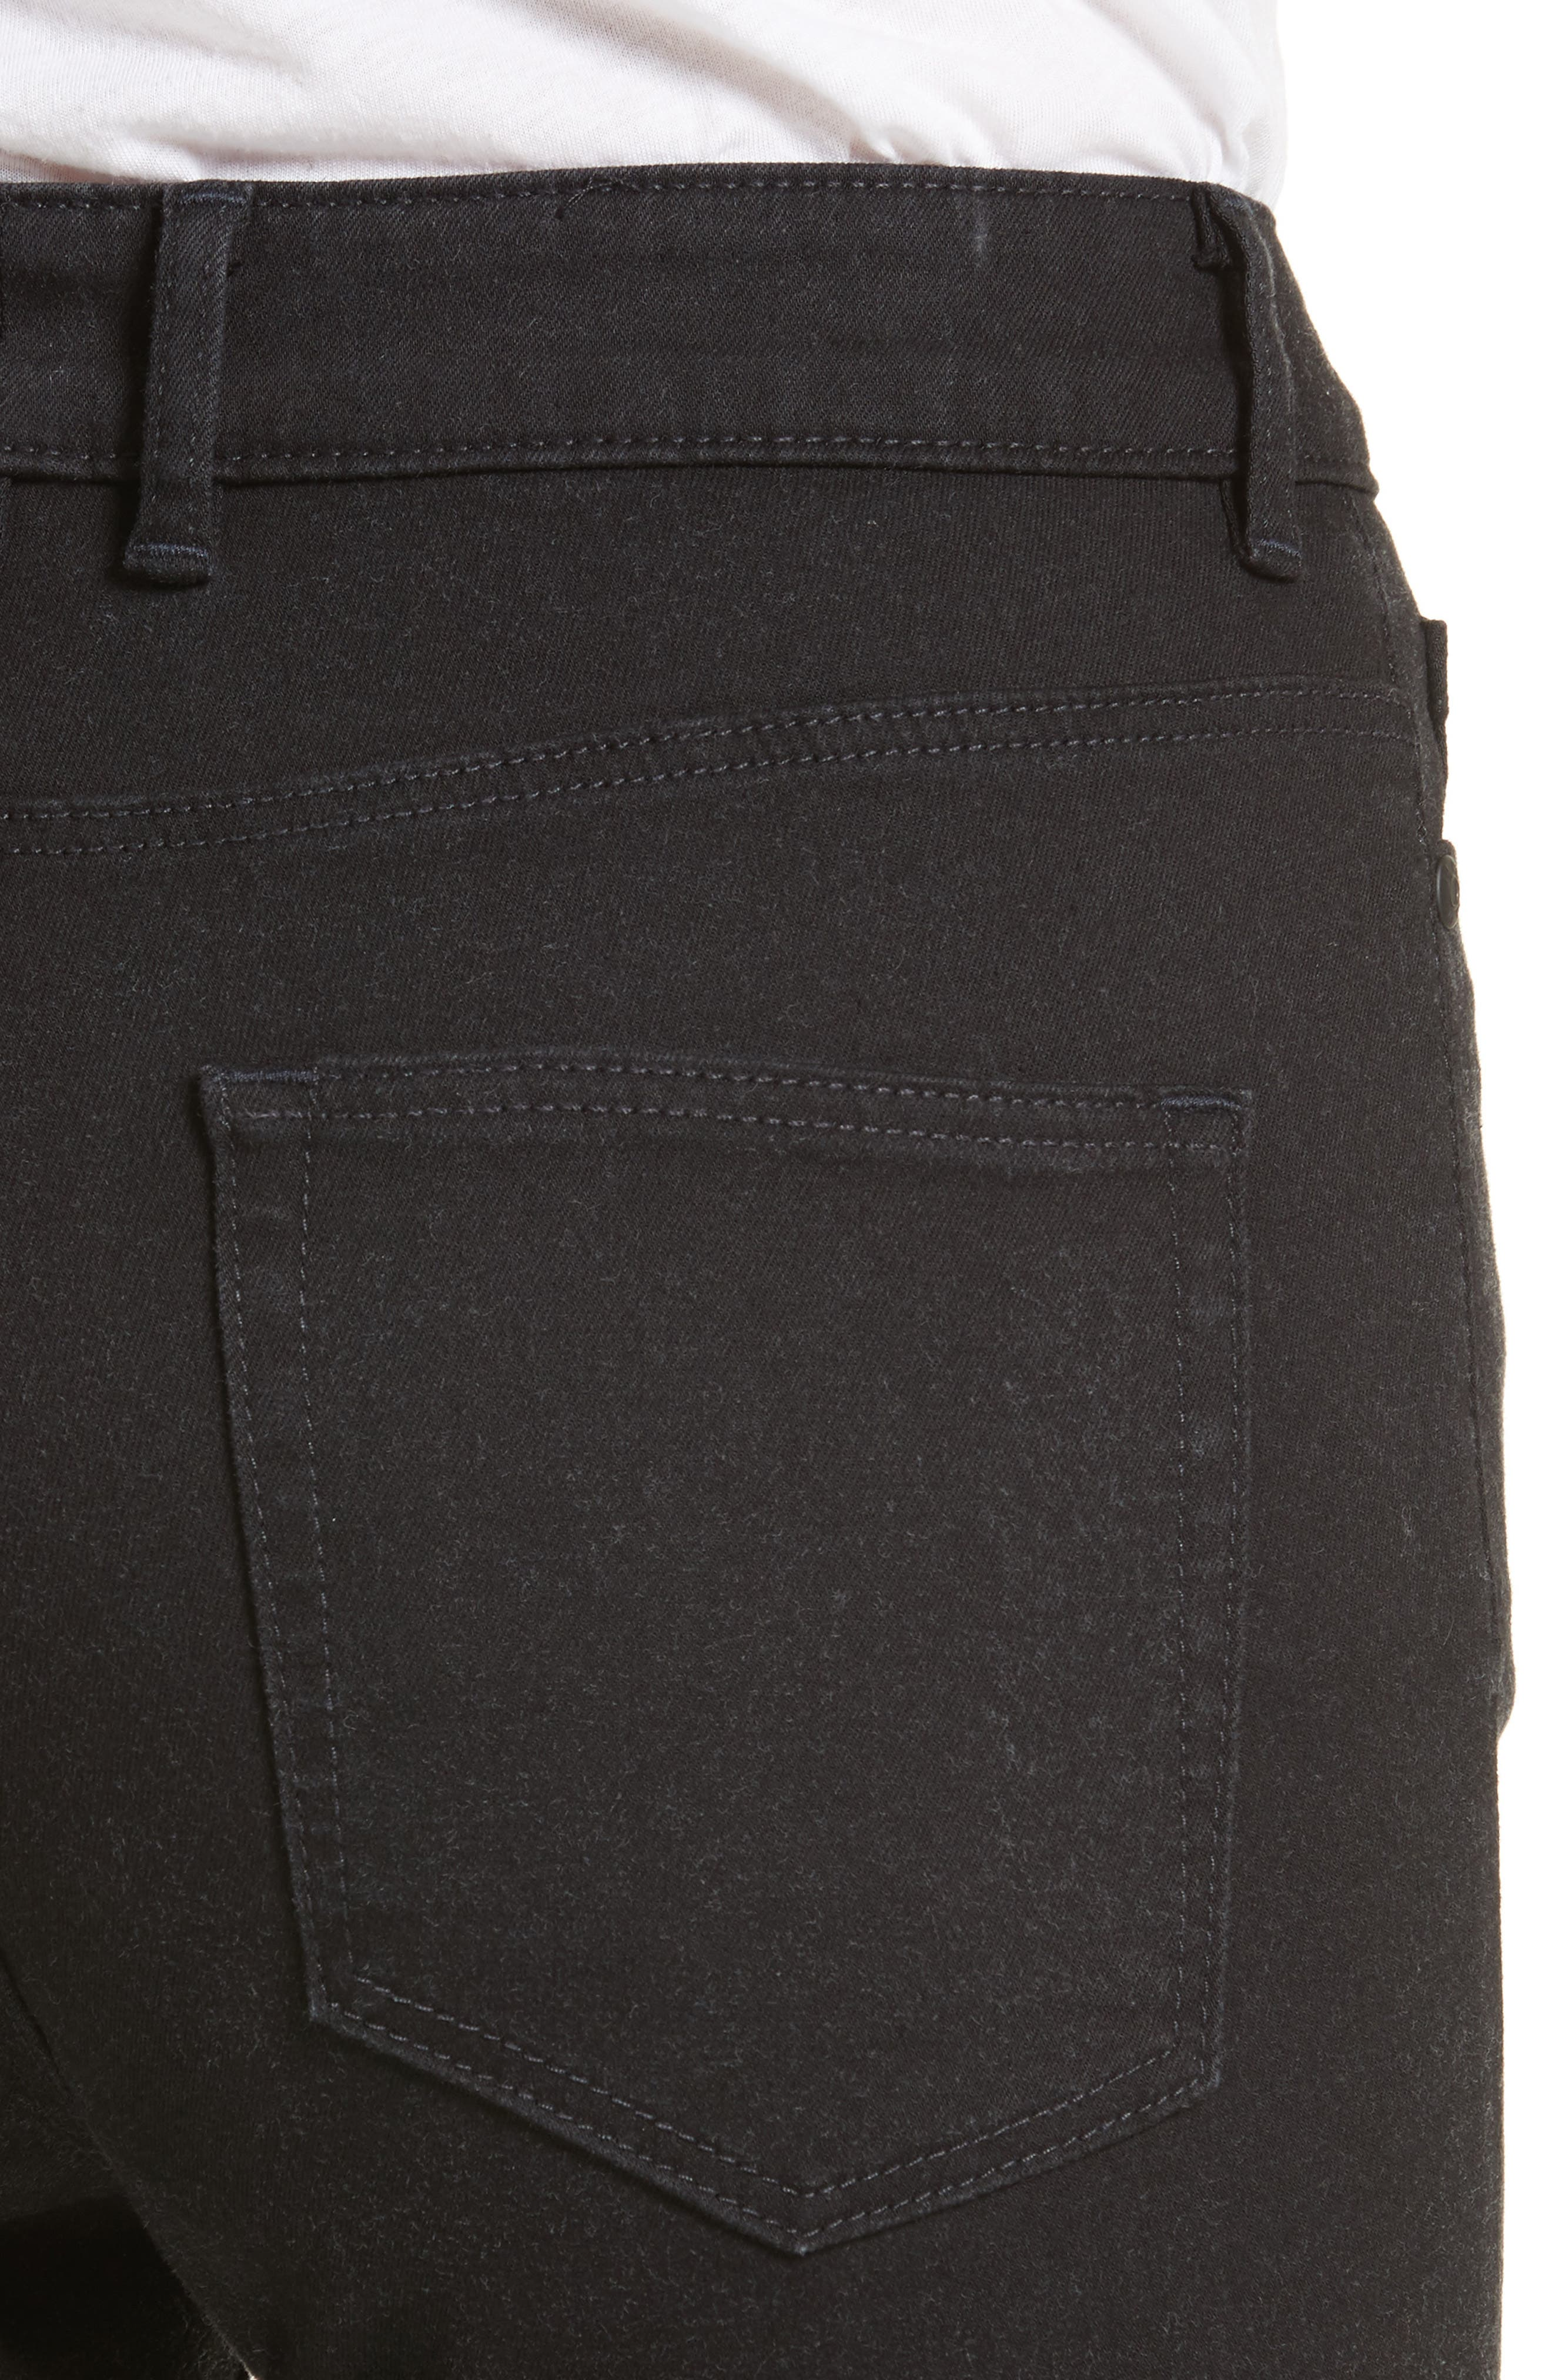 Clemence Skinny Pants,                             Alternate thumbnail 4, color,                             Coal Wash